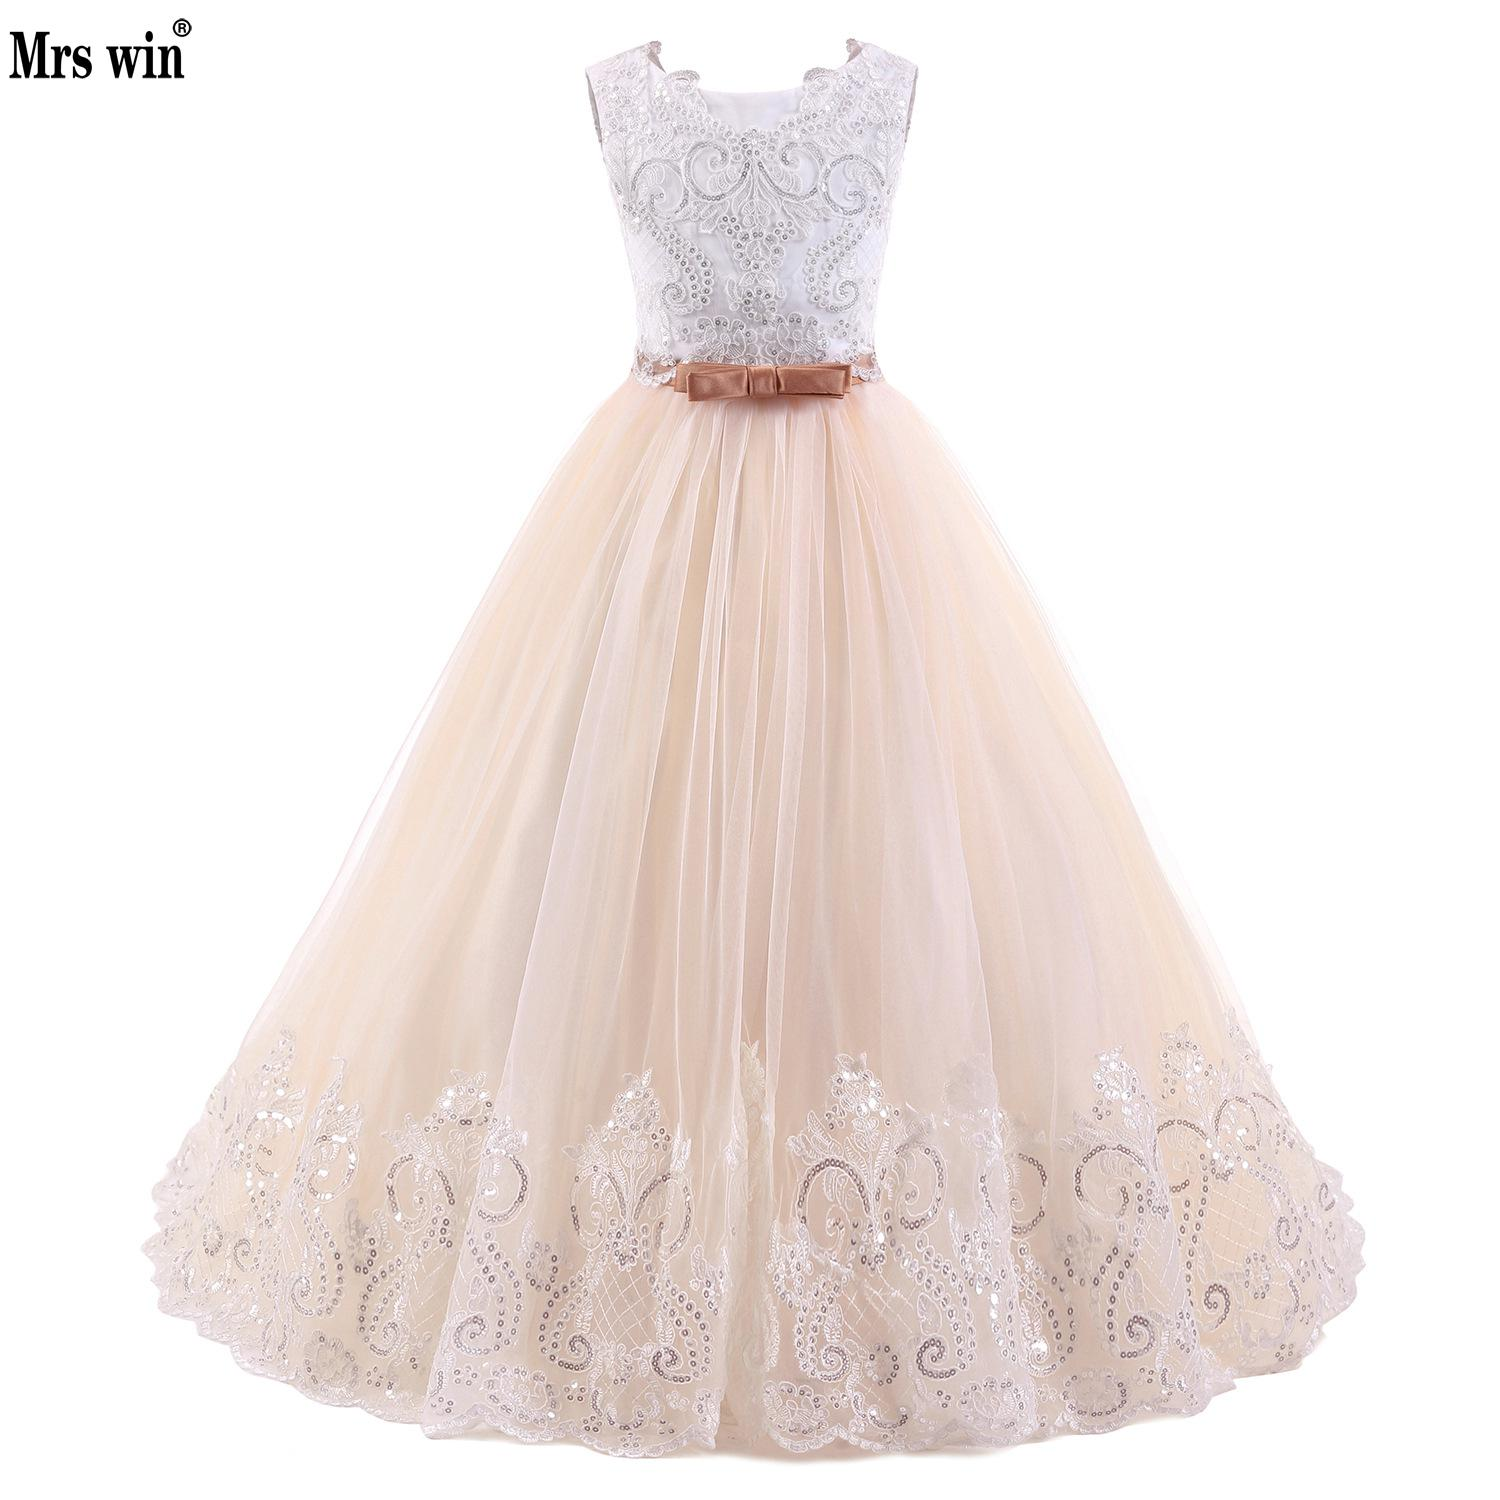 2018 Champagne Flower Girl Dress With Beige Ribbon Bow Crew Neck ...